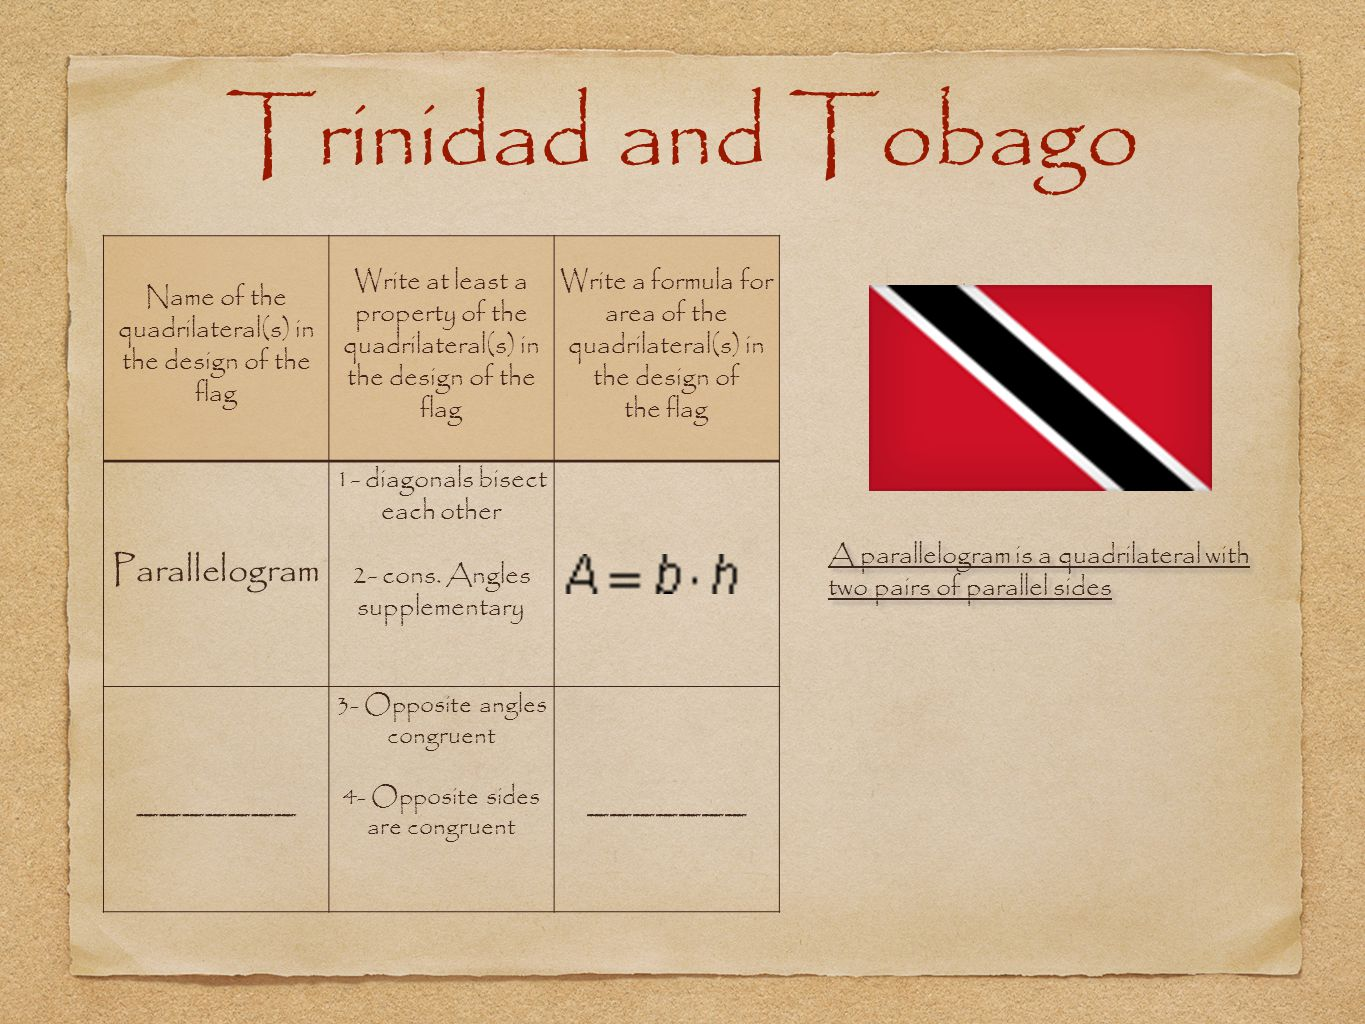 Trinidad and Tobago _______ Parallelogram